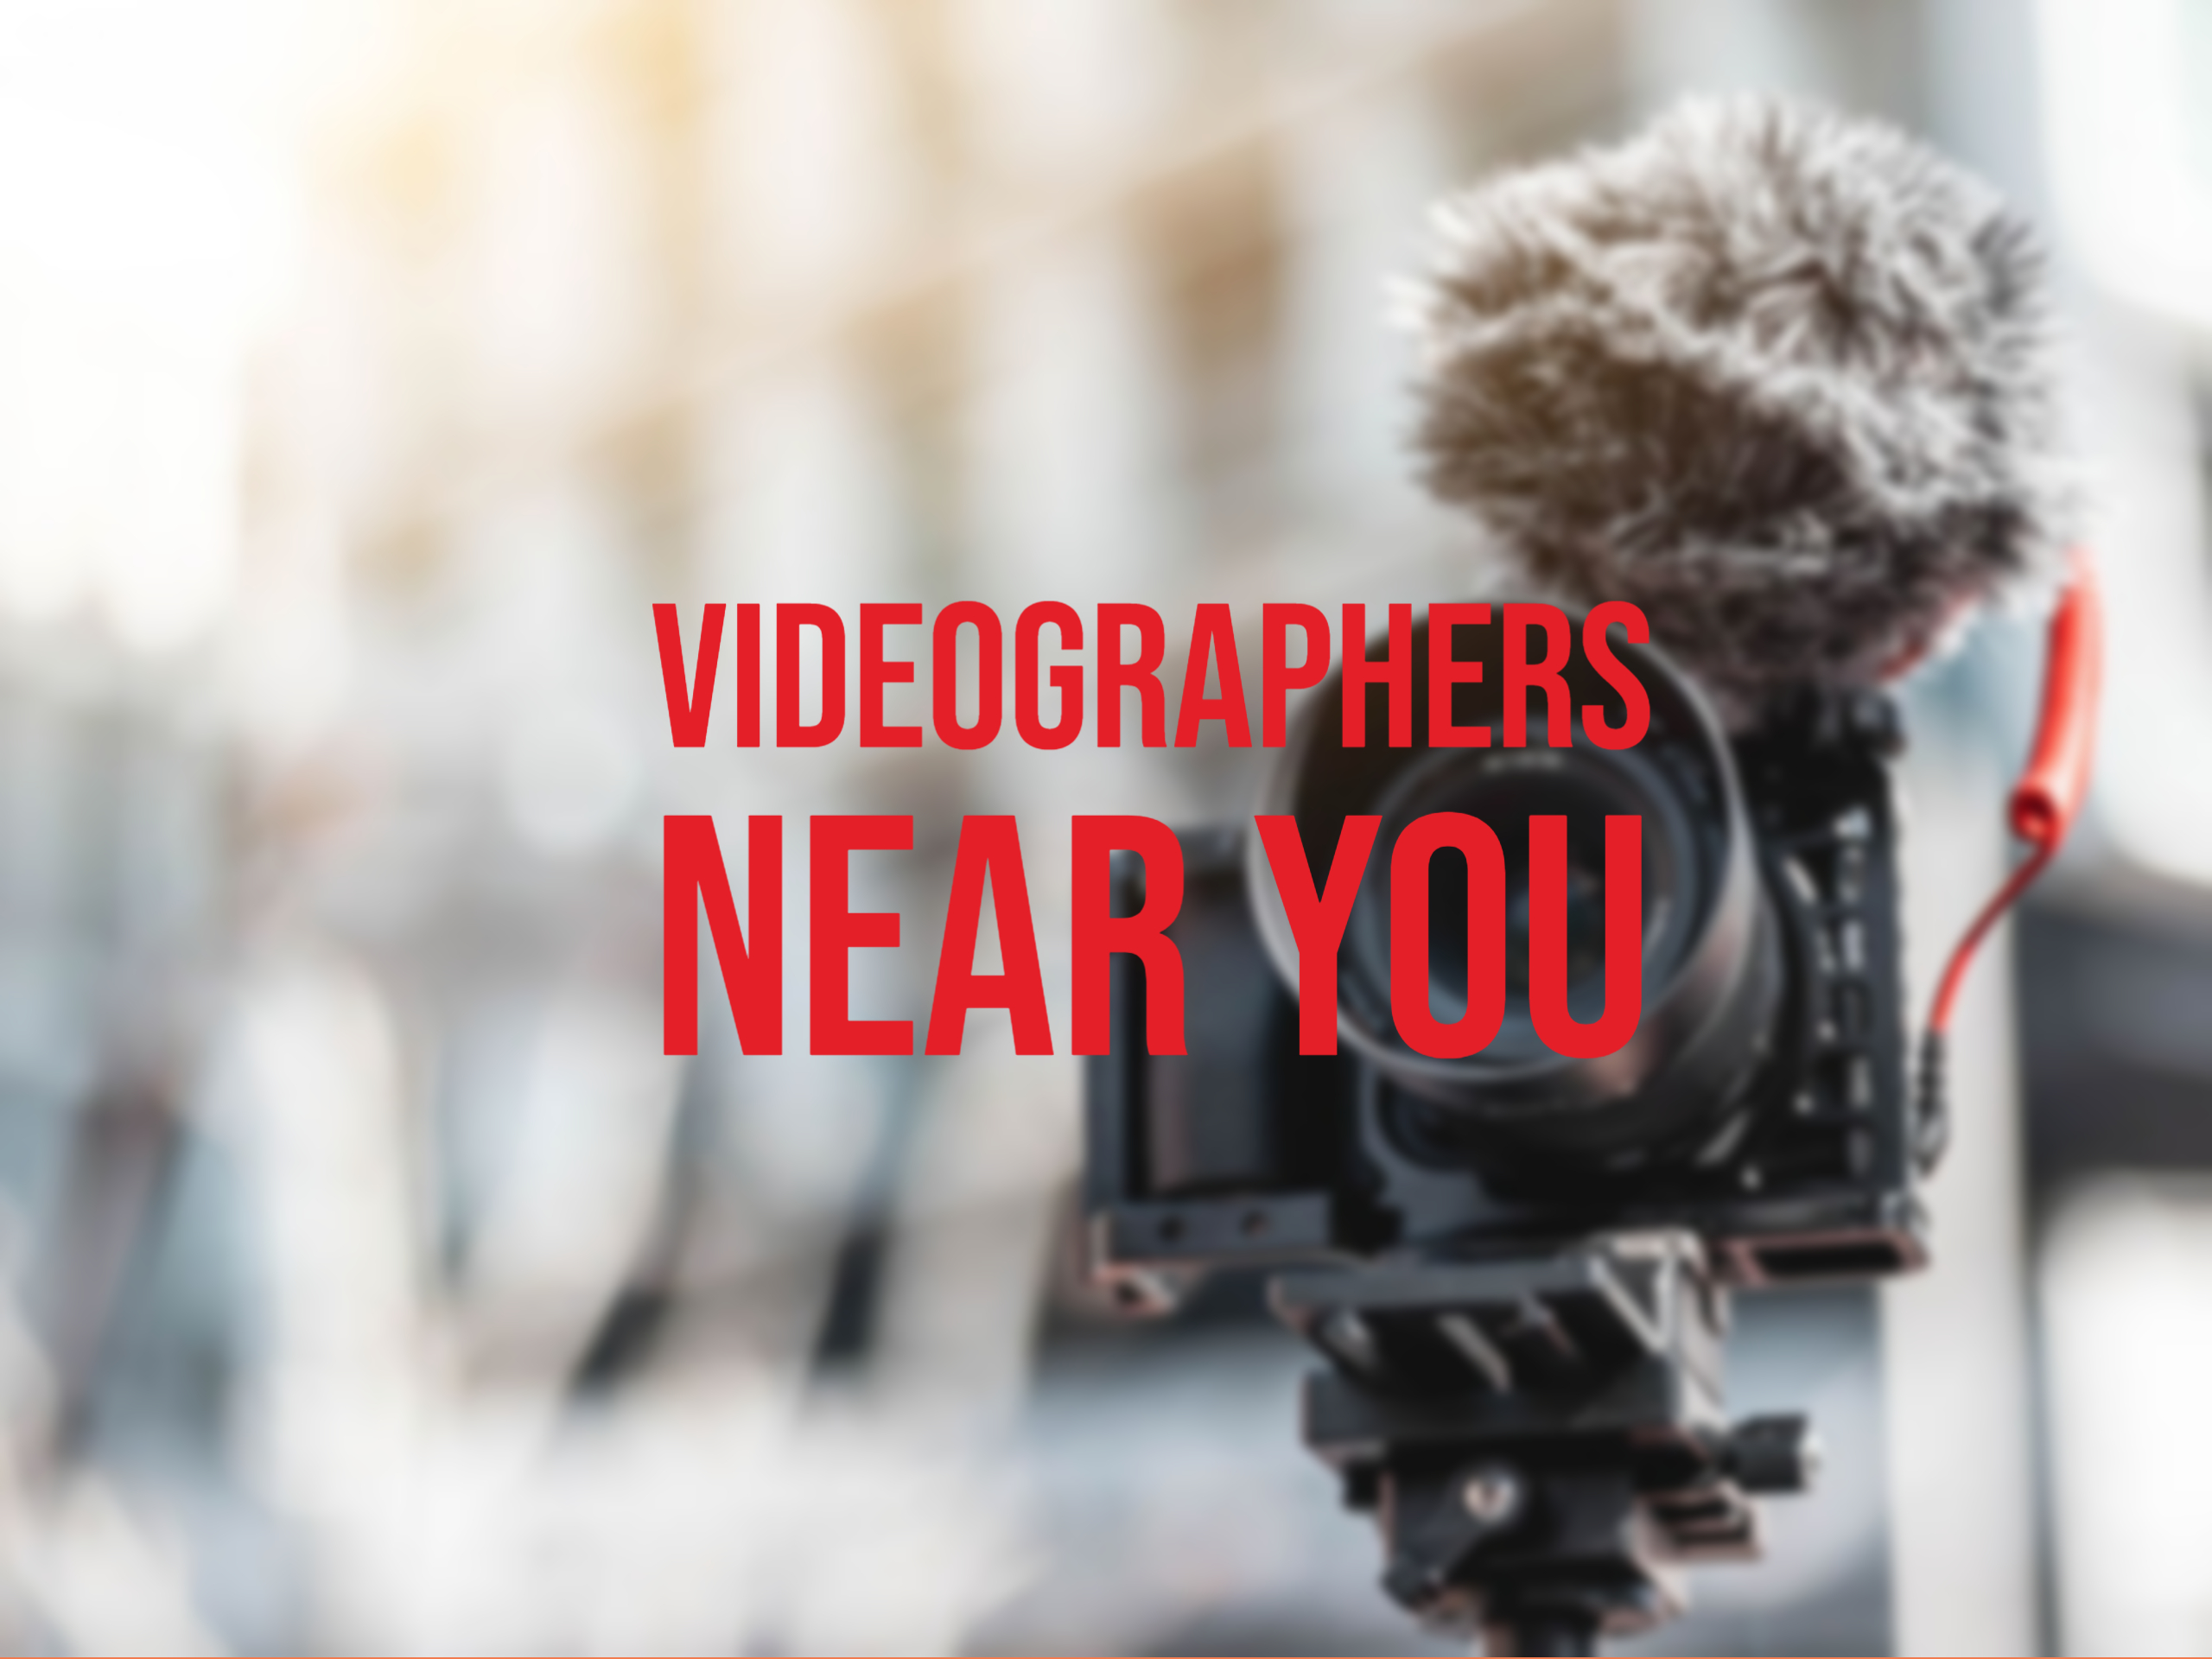 How to find videographers near you